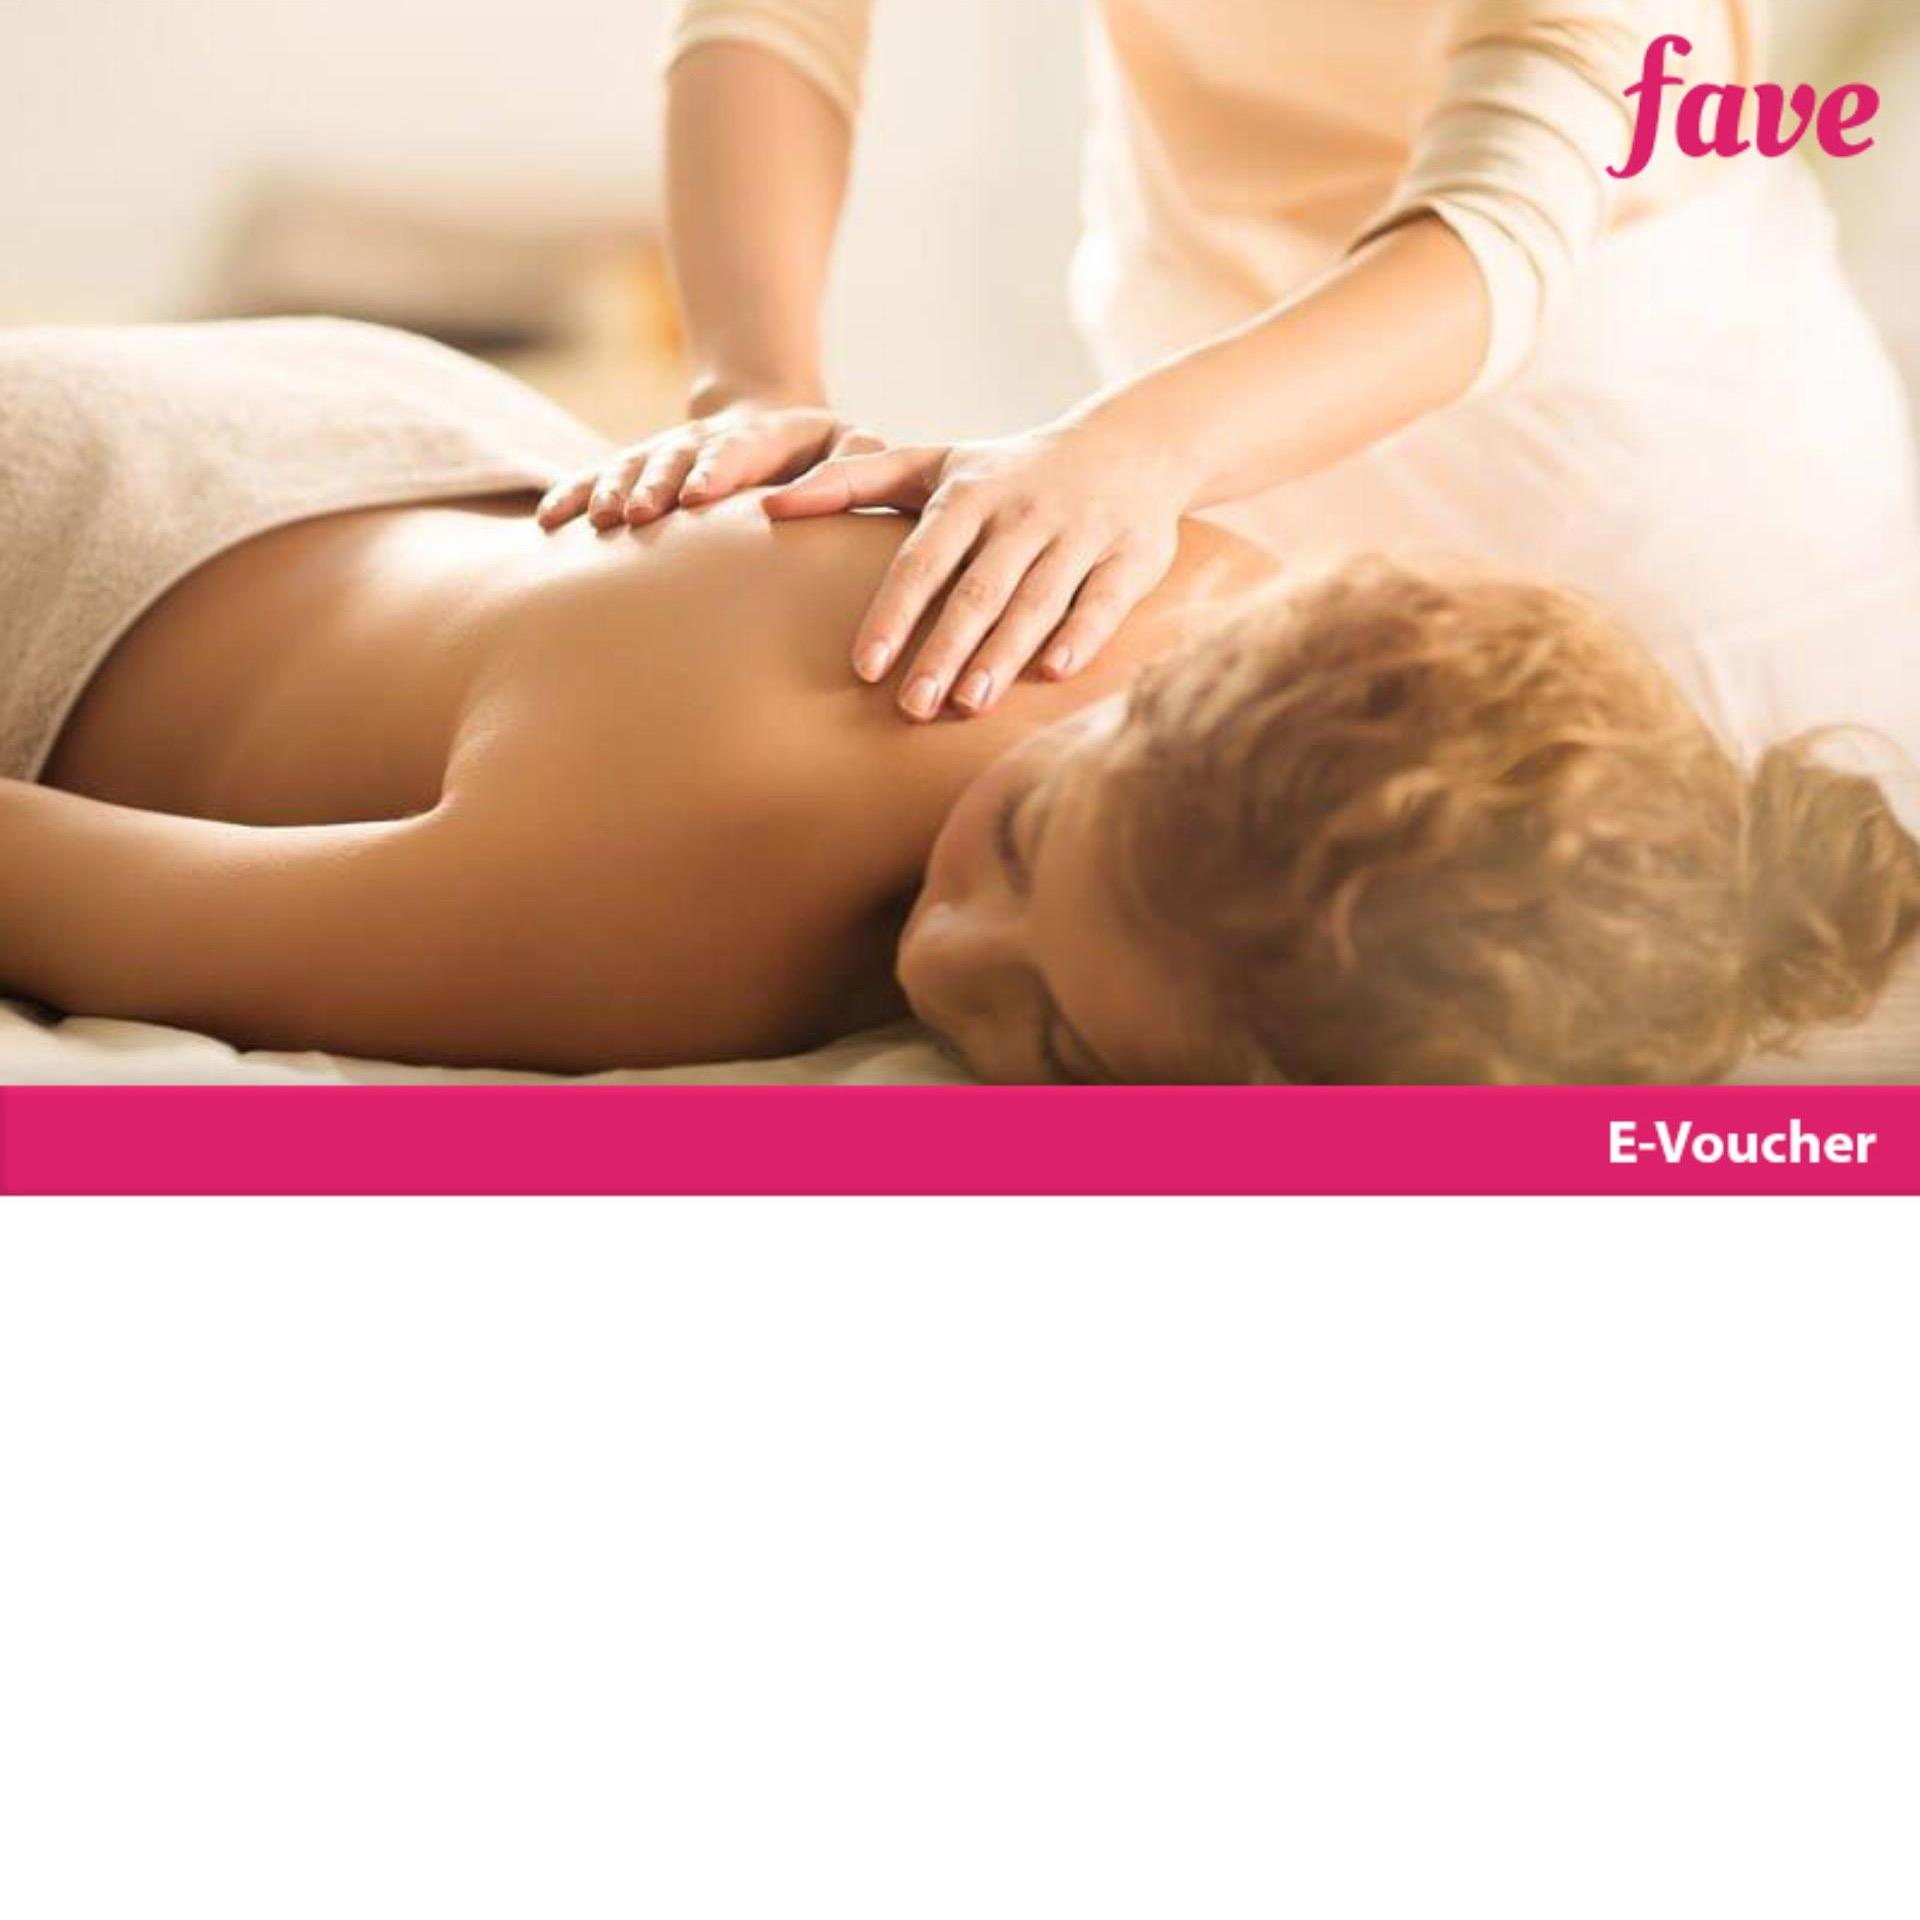 [sunter] Saung Lulur Full Body Massage + Scrub + Steam + Creambath + Head Massage By Fave Indonesia.